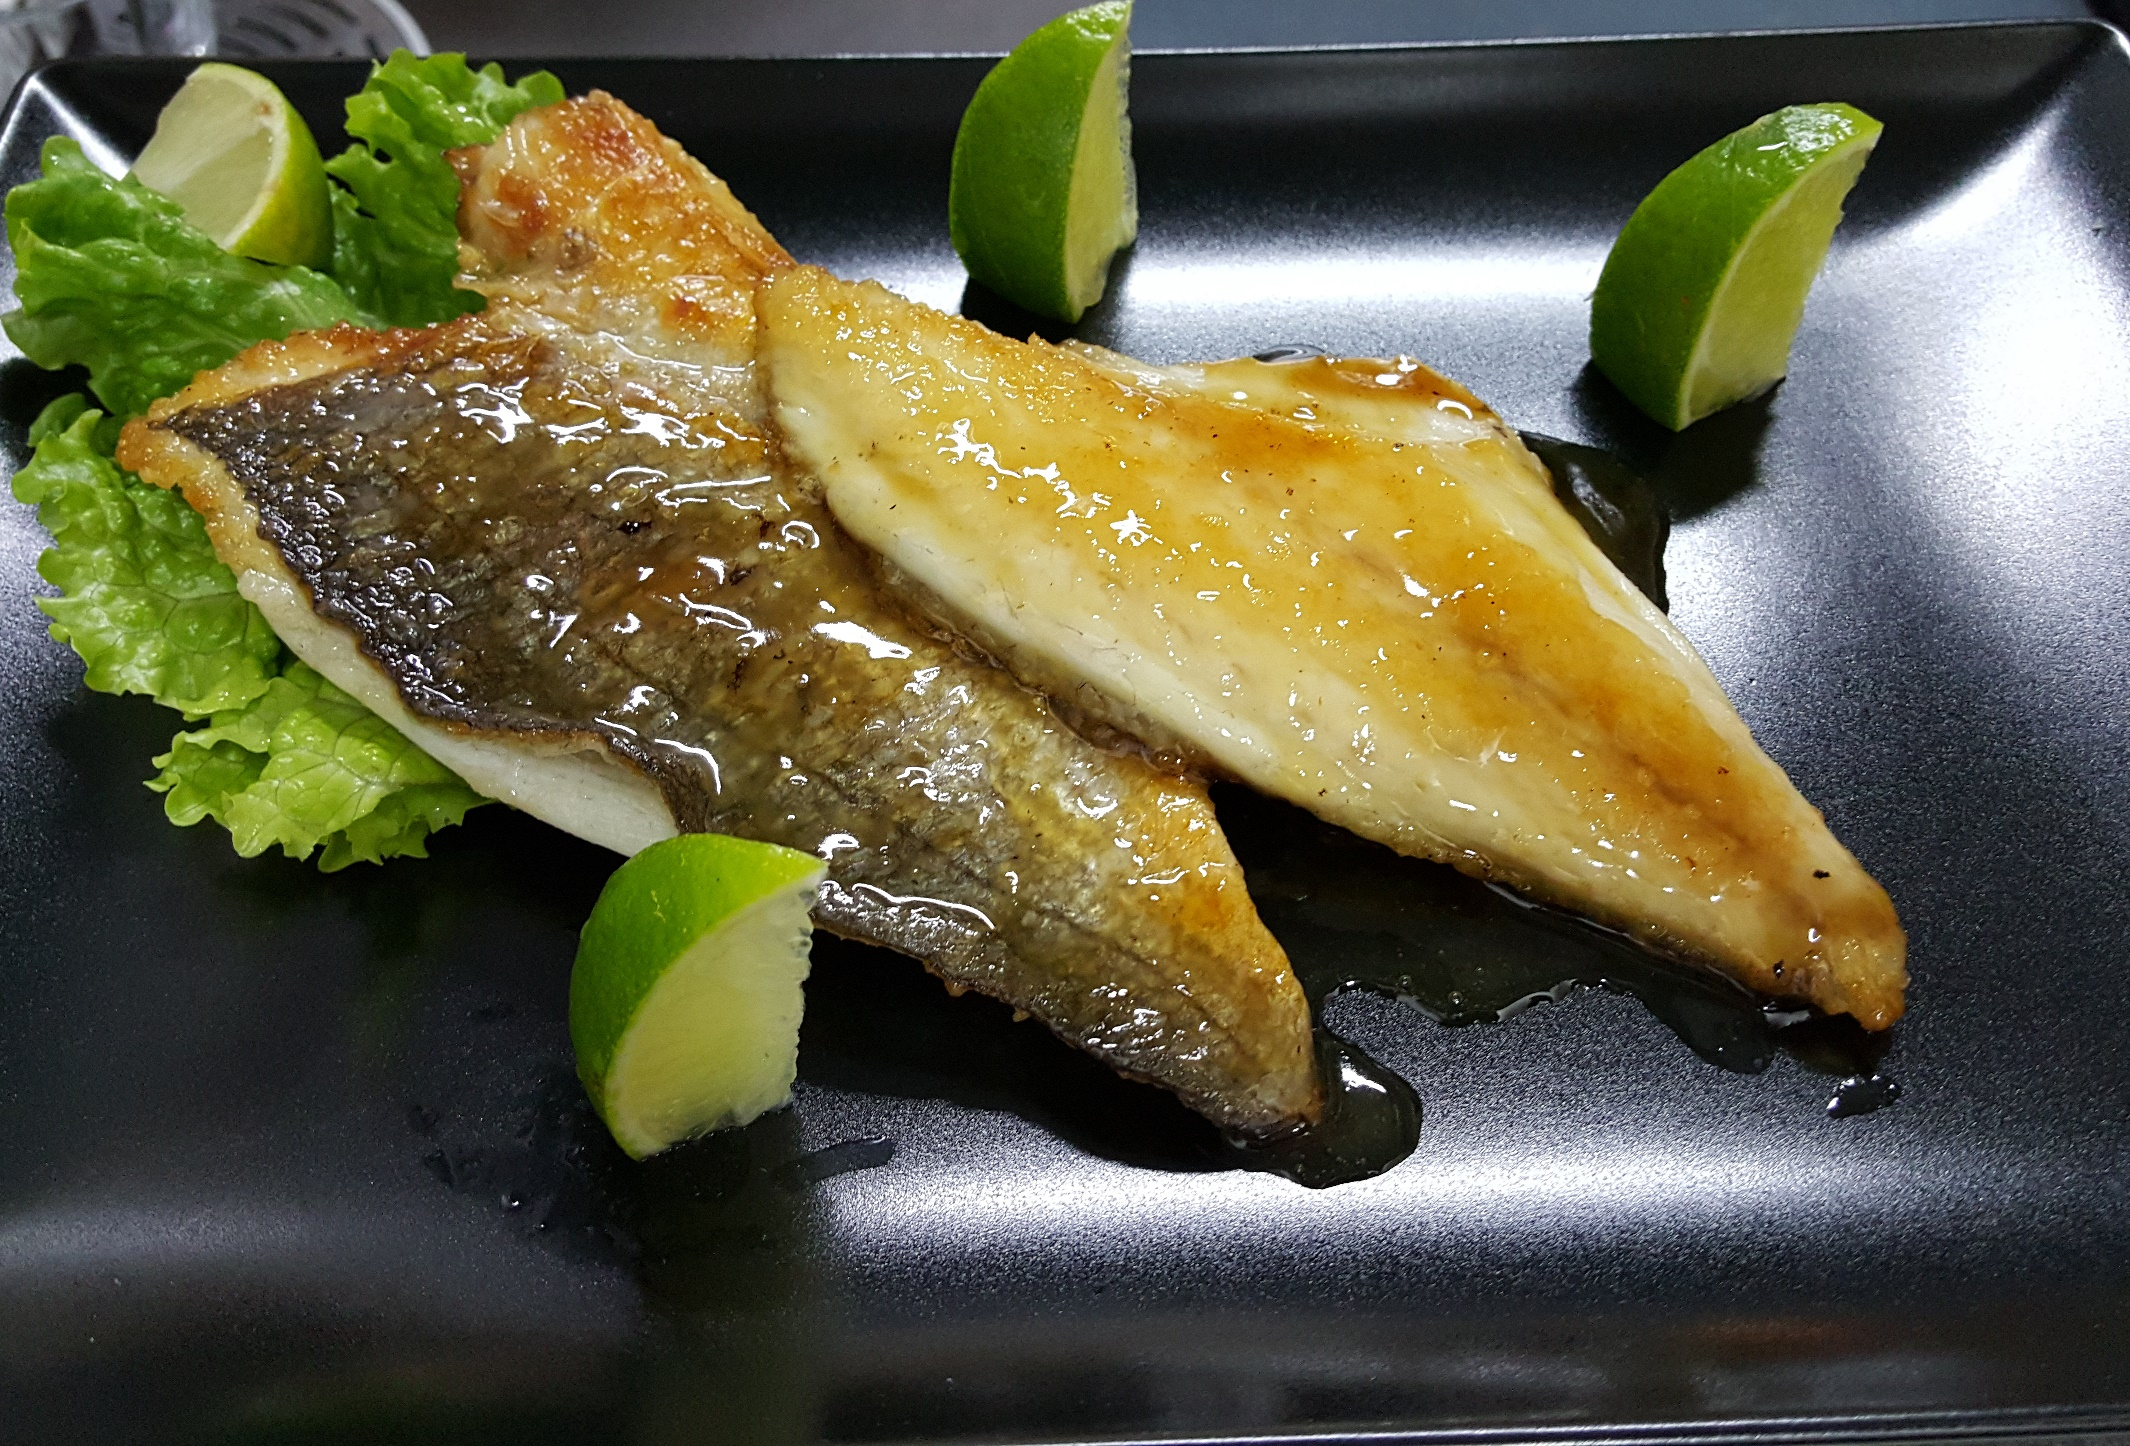 SEA BREAM FILLET WITH HONEY-GINGER SAUCE - a magic fusion recipe of Sri Lanka, typical healthy cuisine